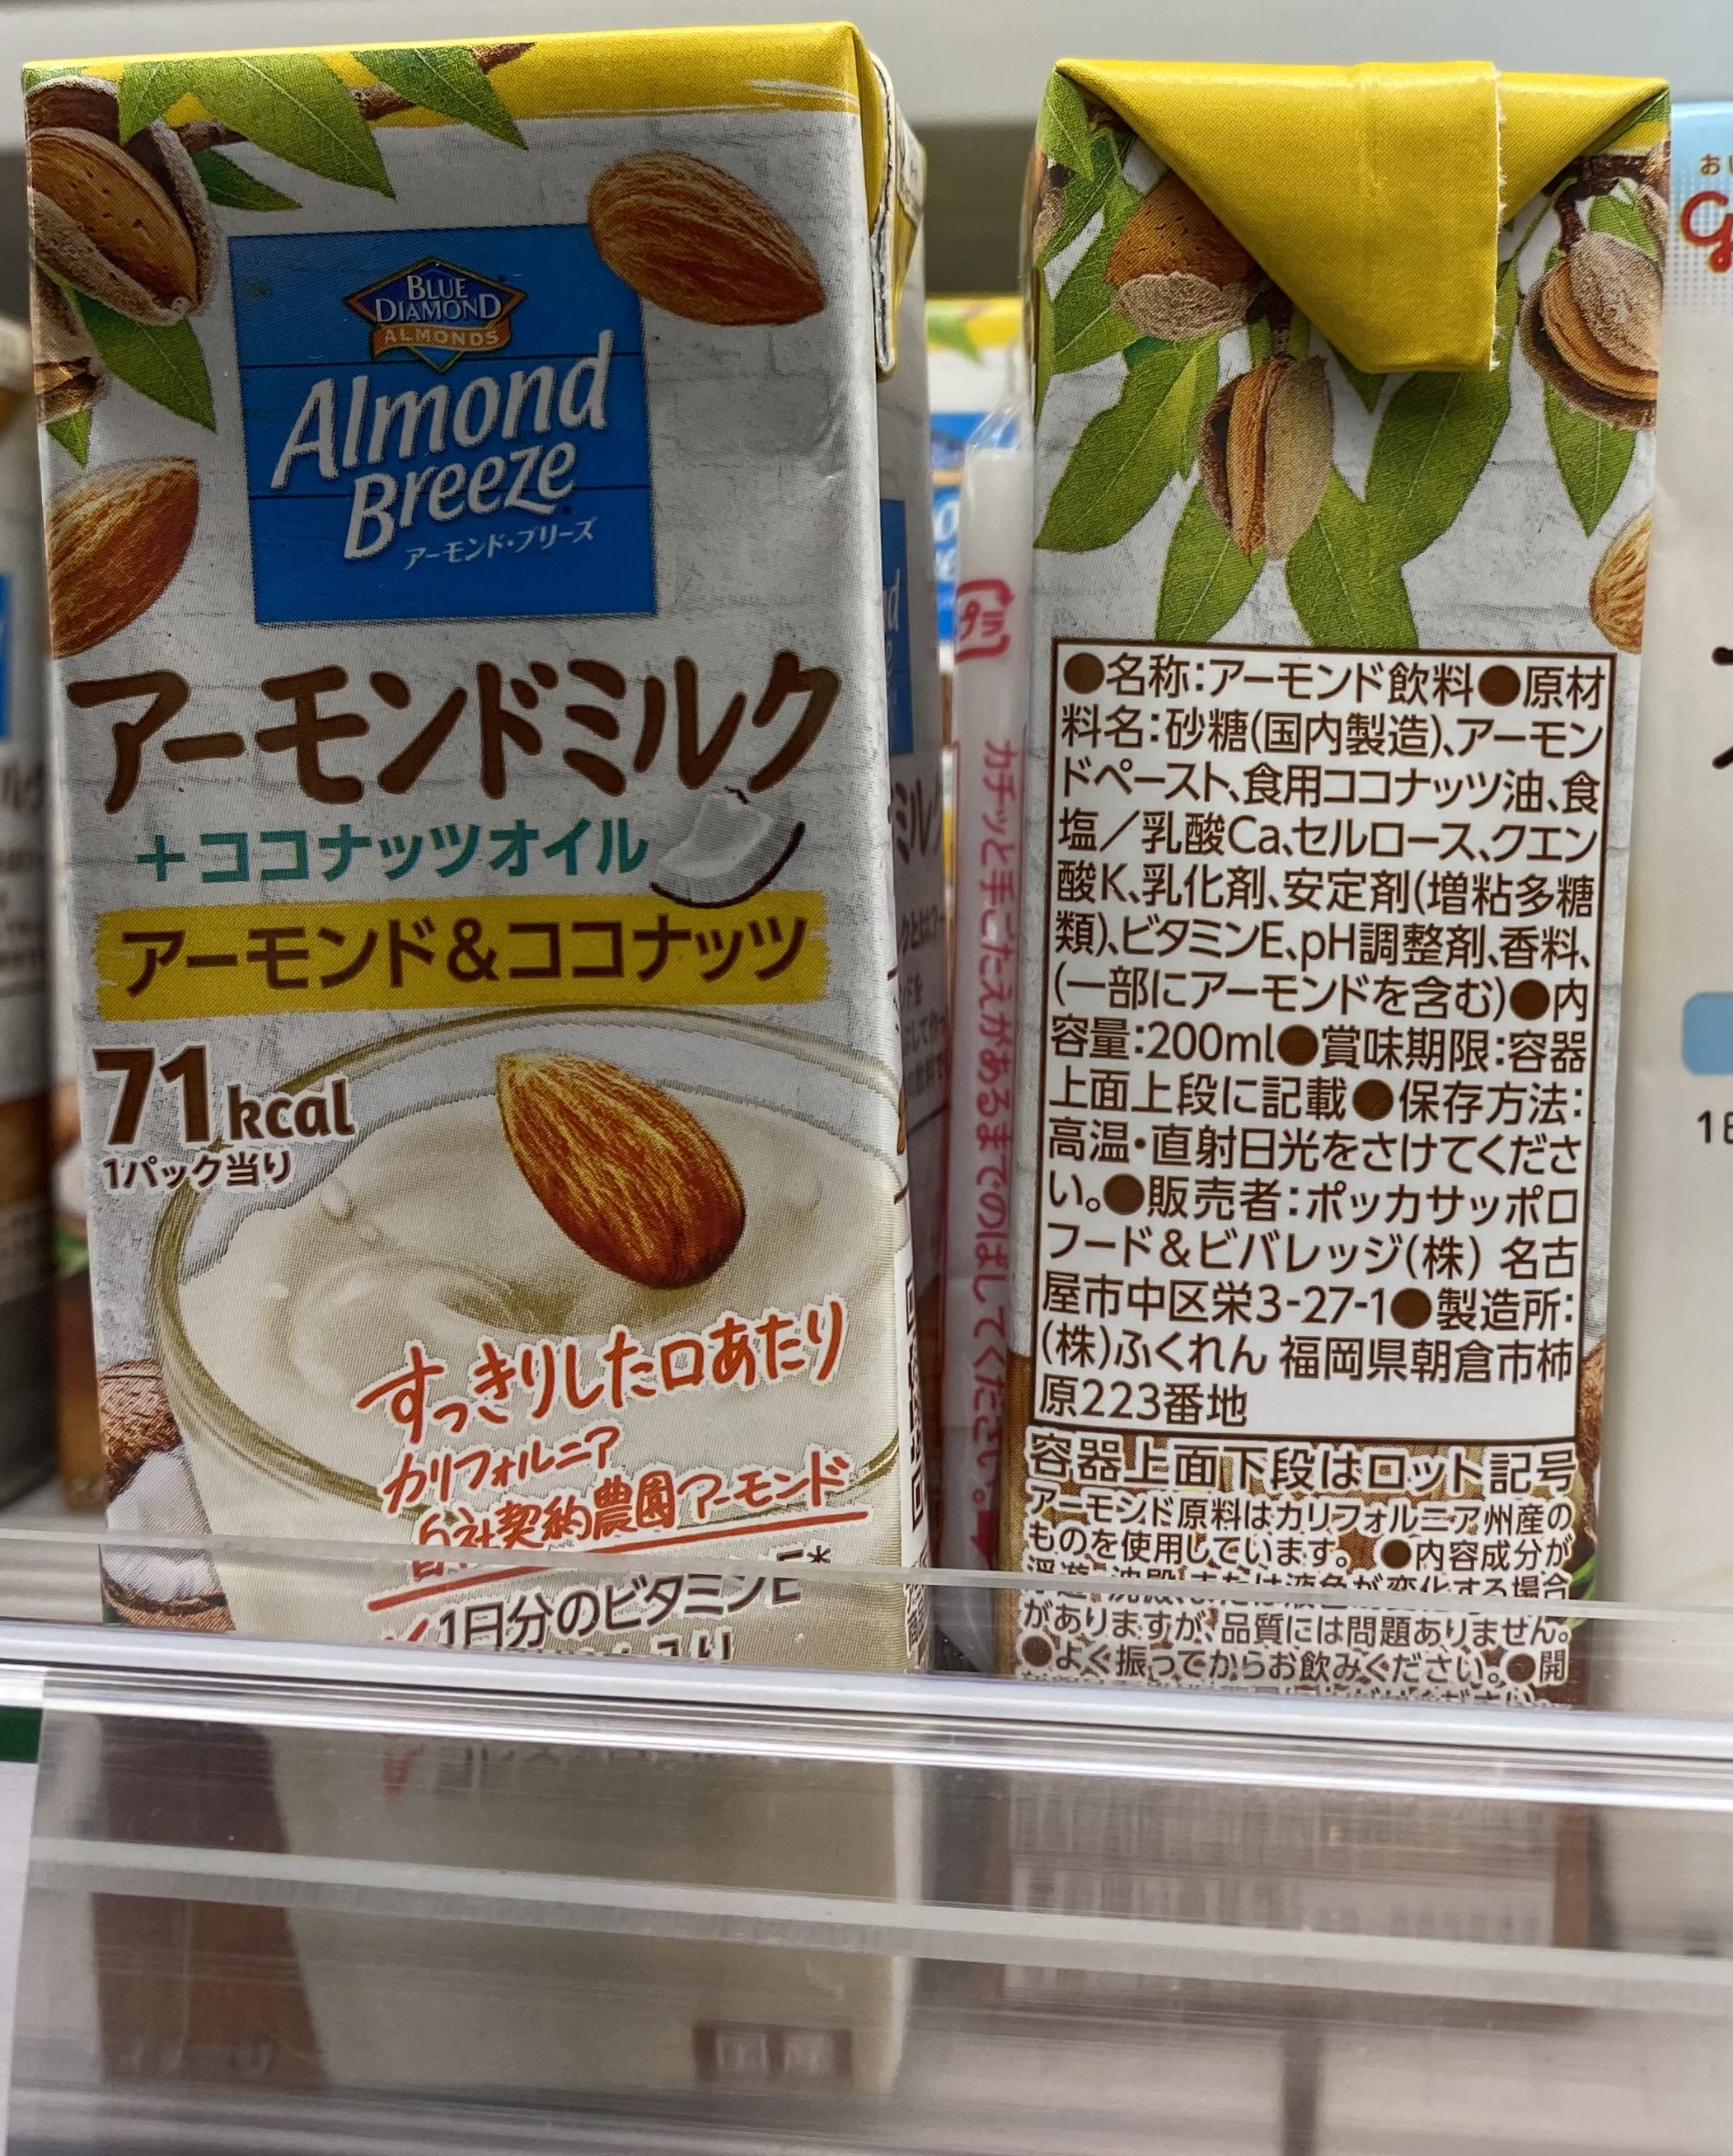 Almond Breeze Almond Milk, Almond & Coconut